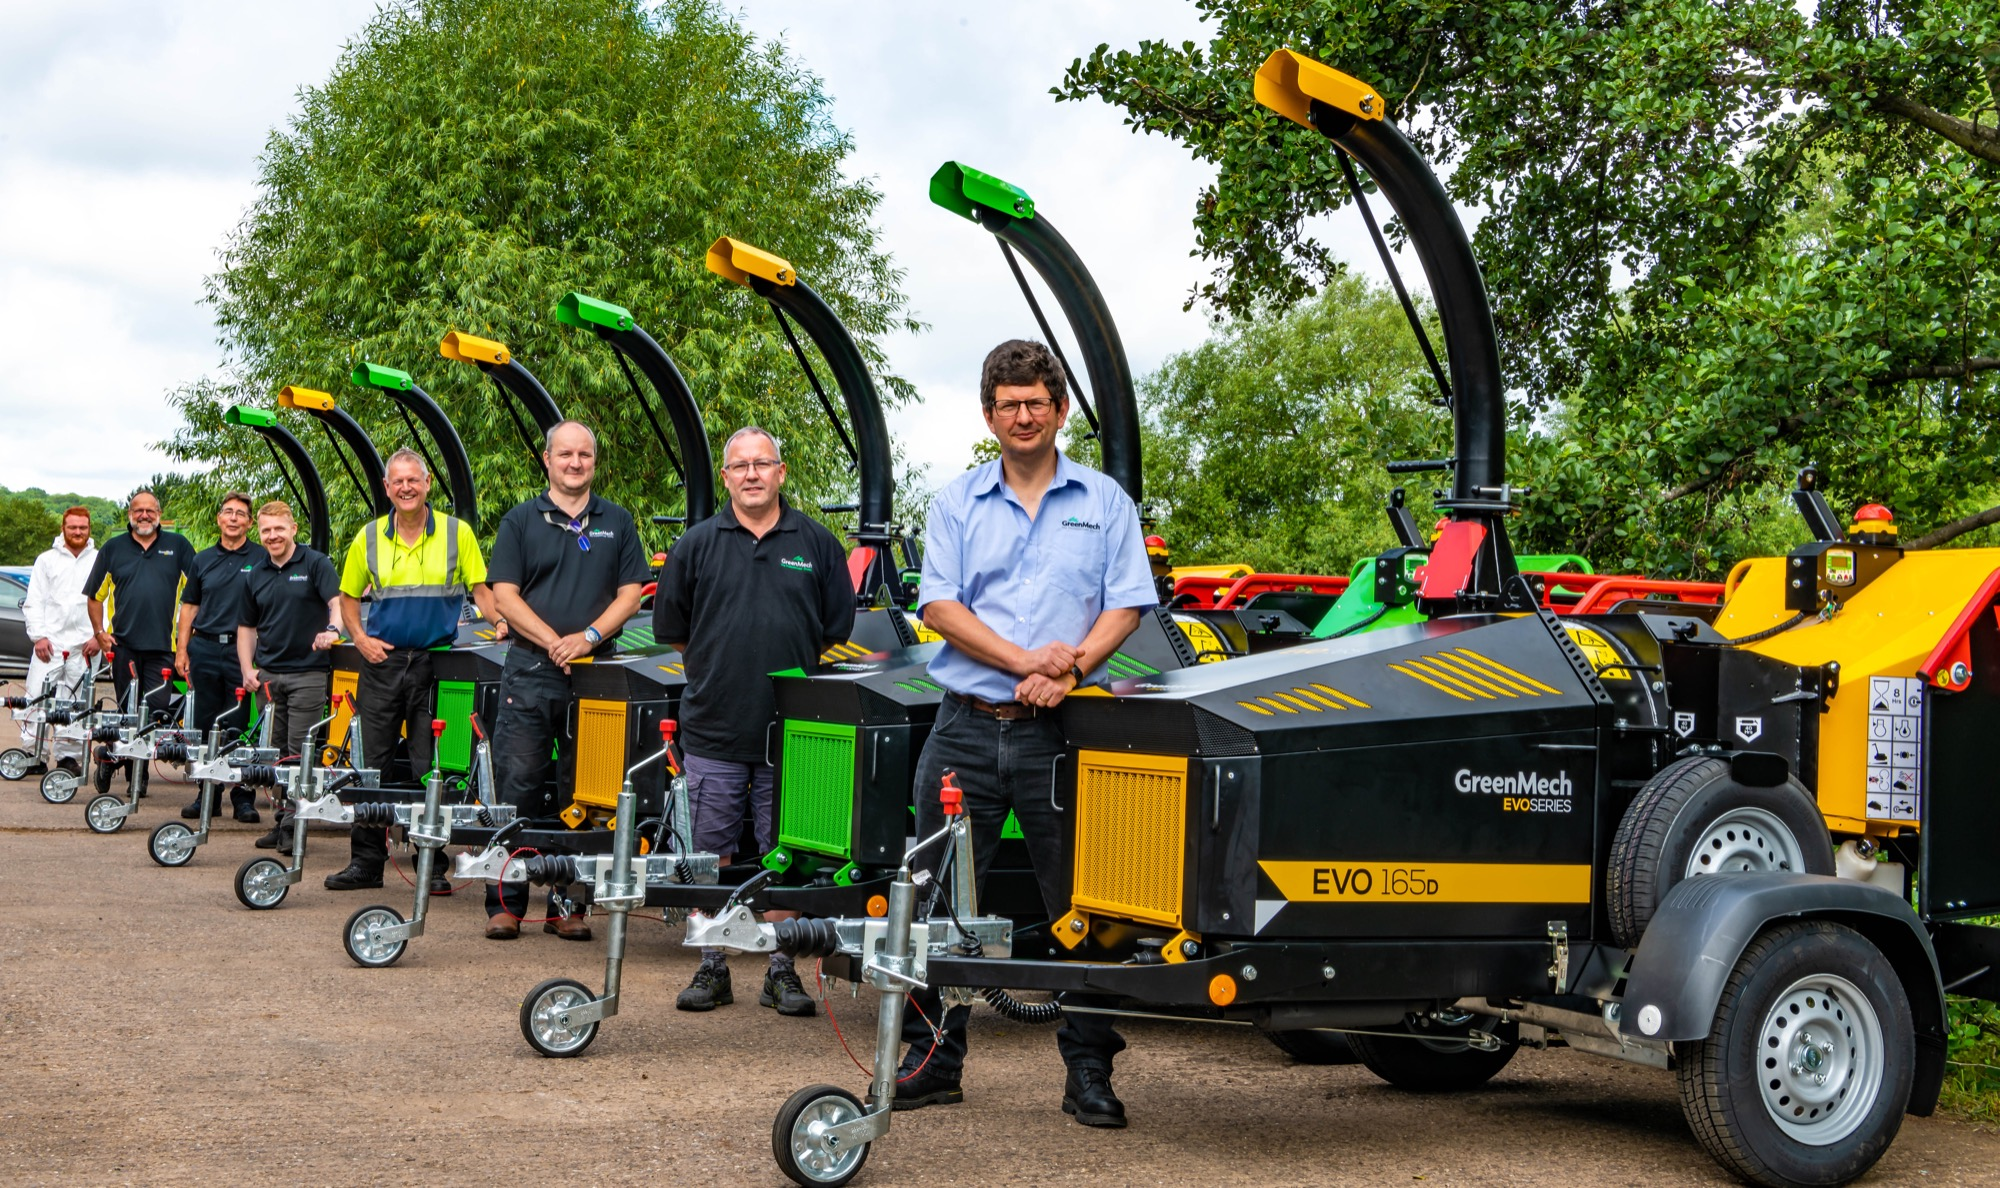 GreenMech members of staff stood next to Woodchippers in Alcester where they are manufactured